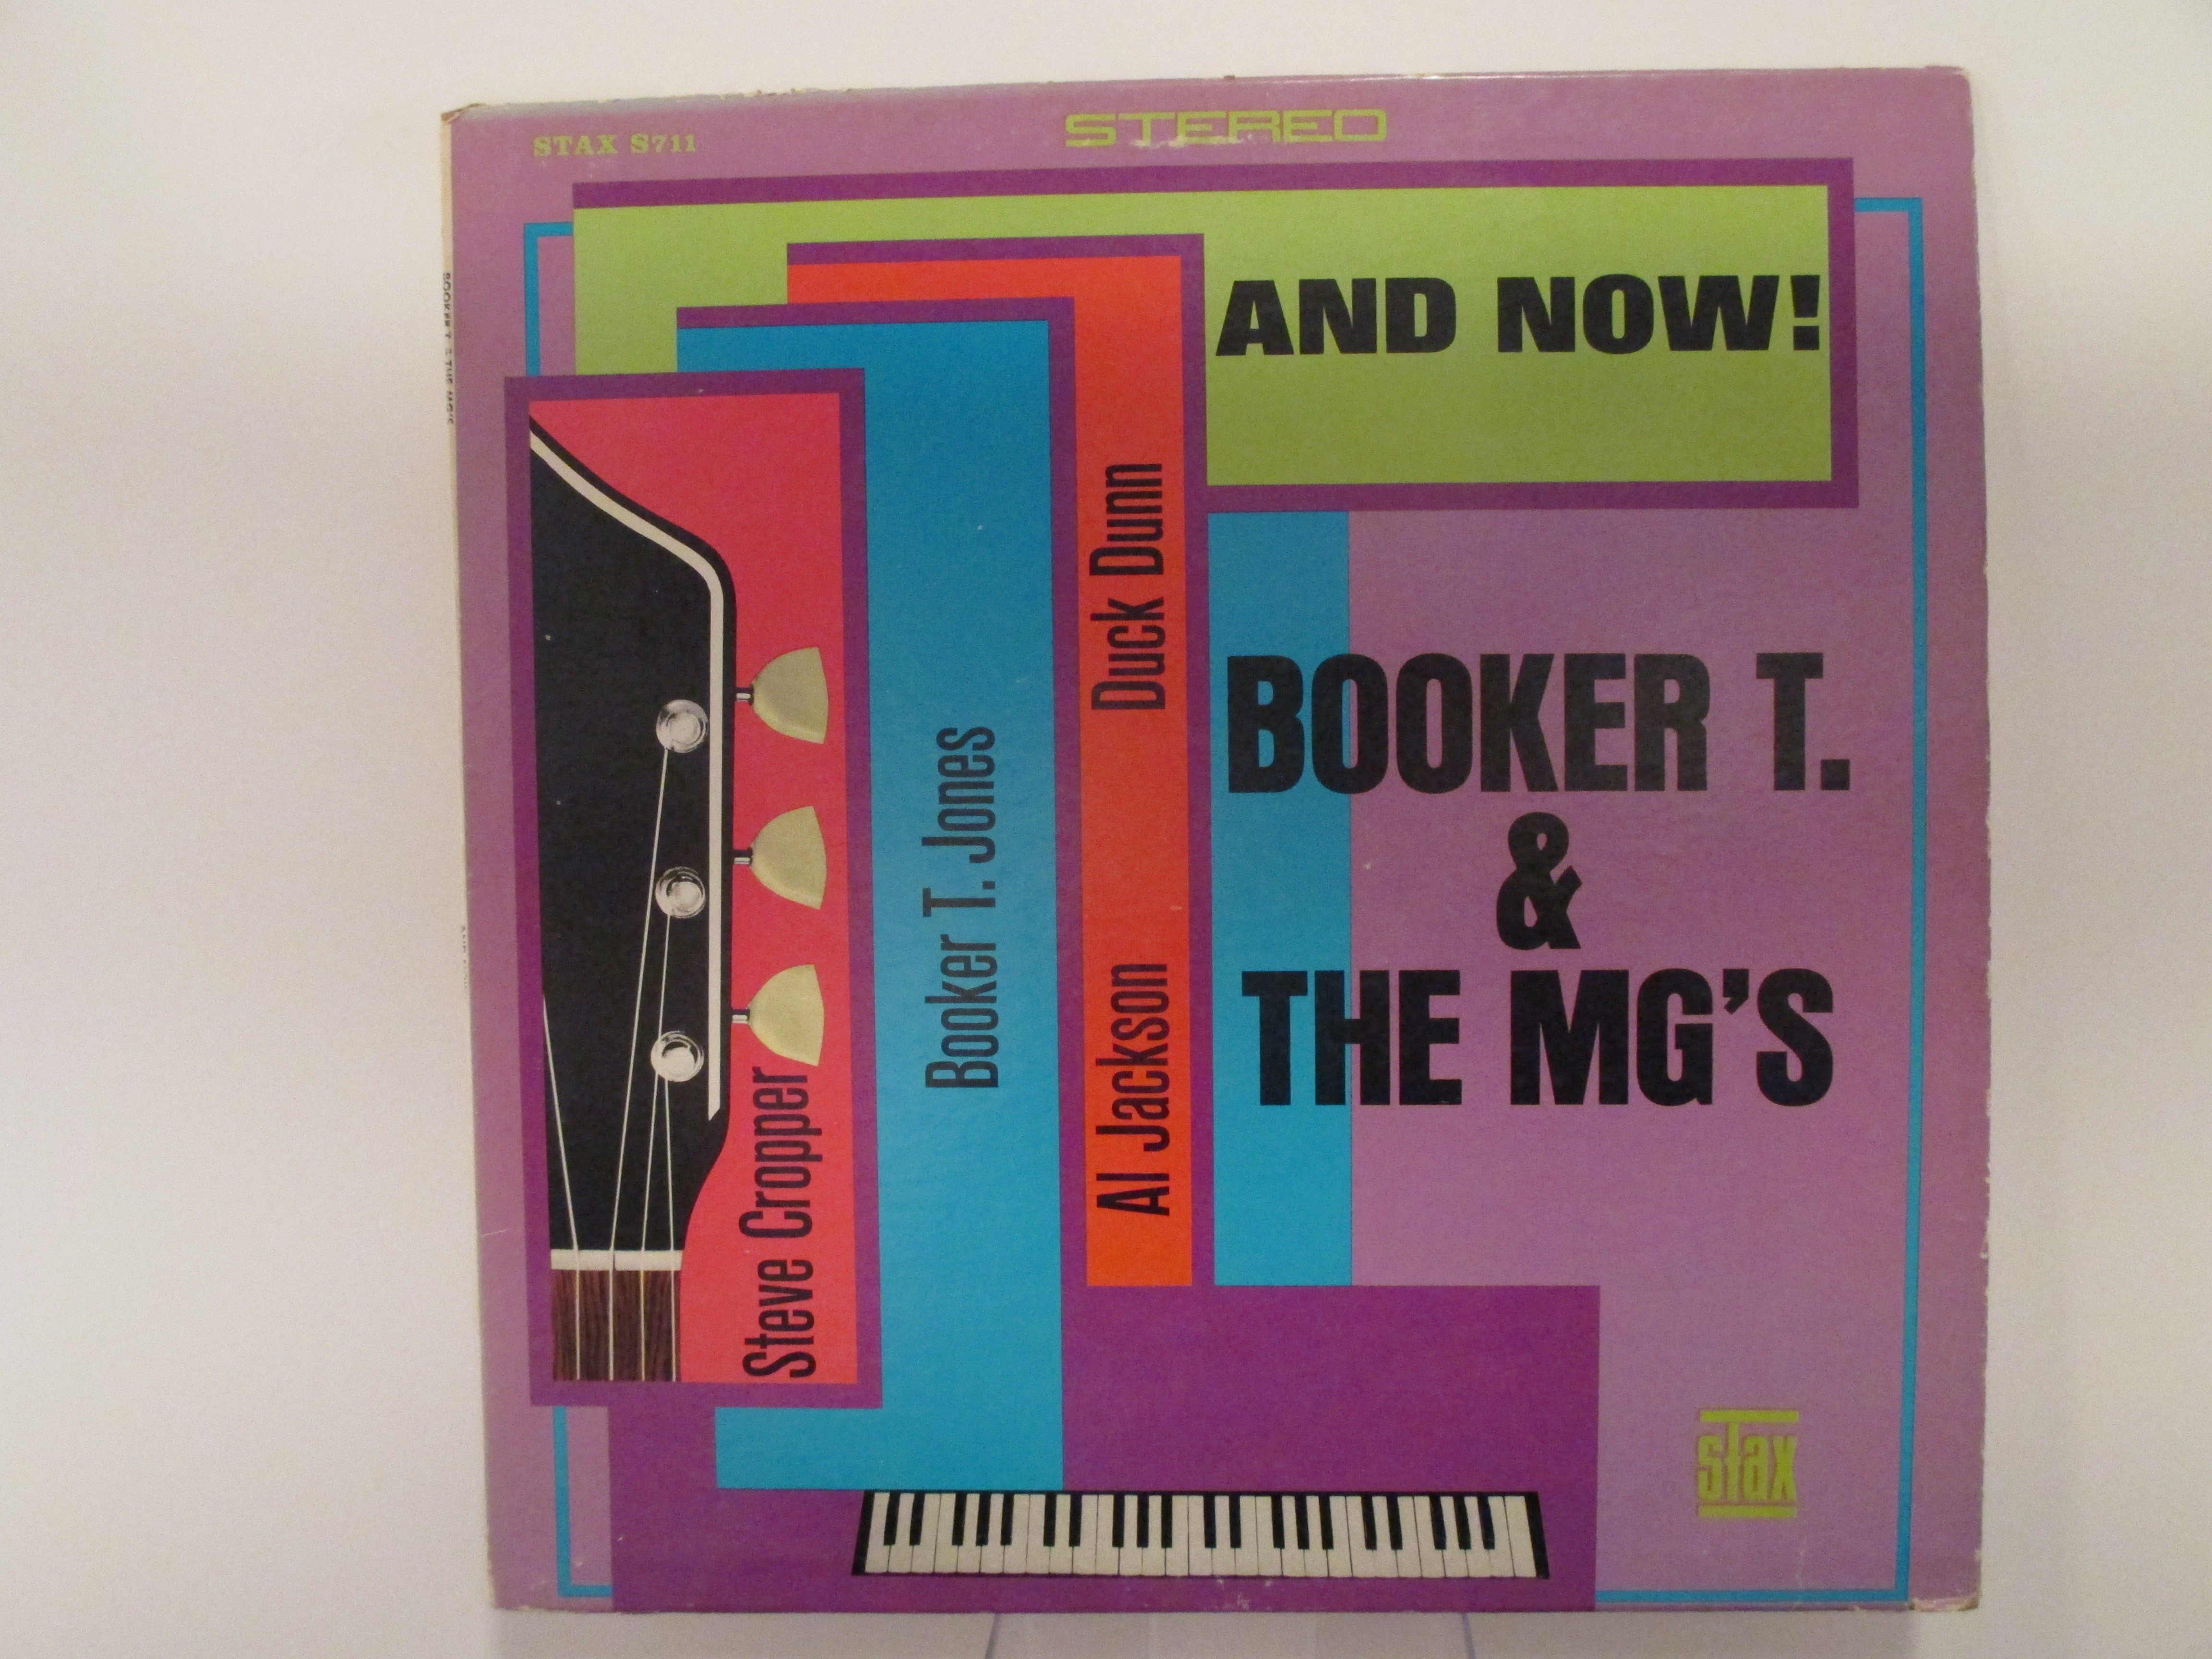 """BOOKER T. & MG's : """"And now!"""""""